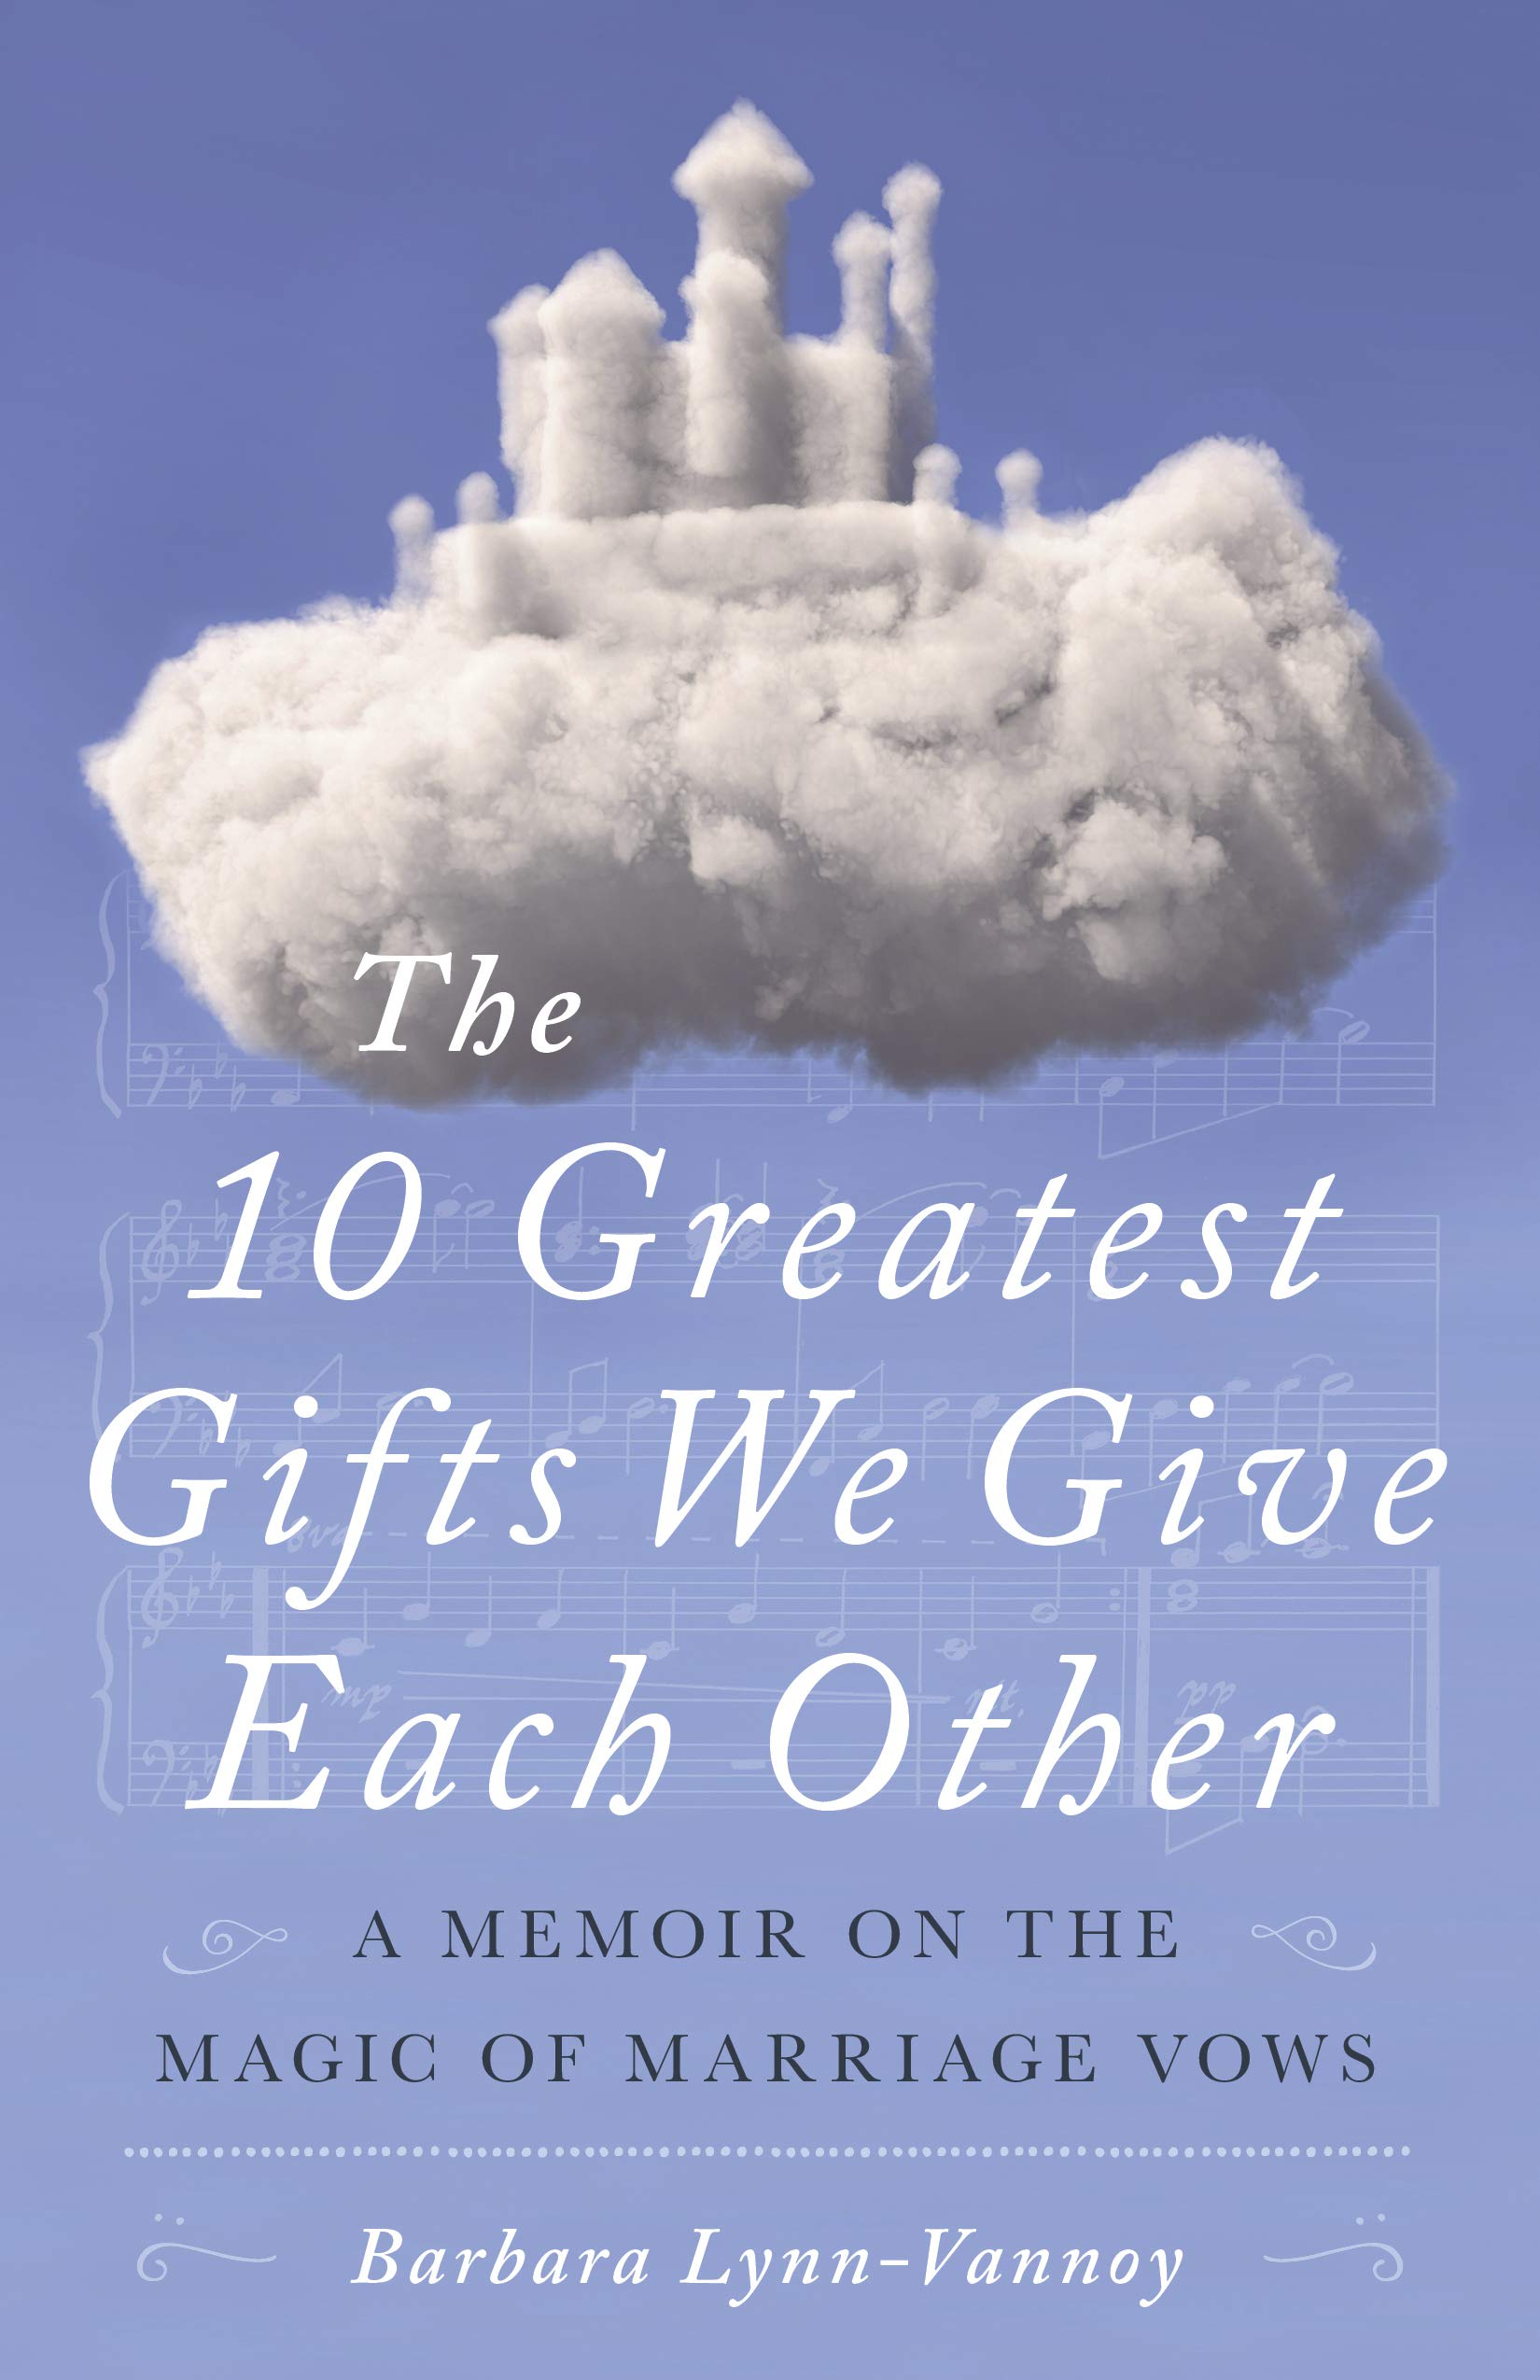 The 10 Greatest Gifts We Give Each Other: A Memoir on the Magic of Marriage Vows